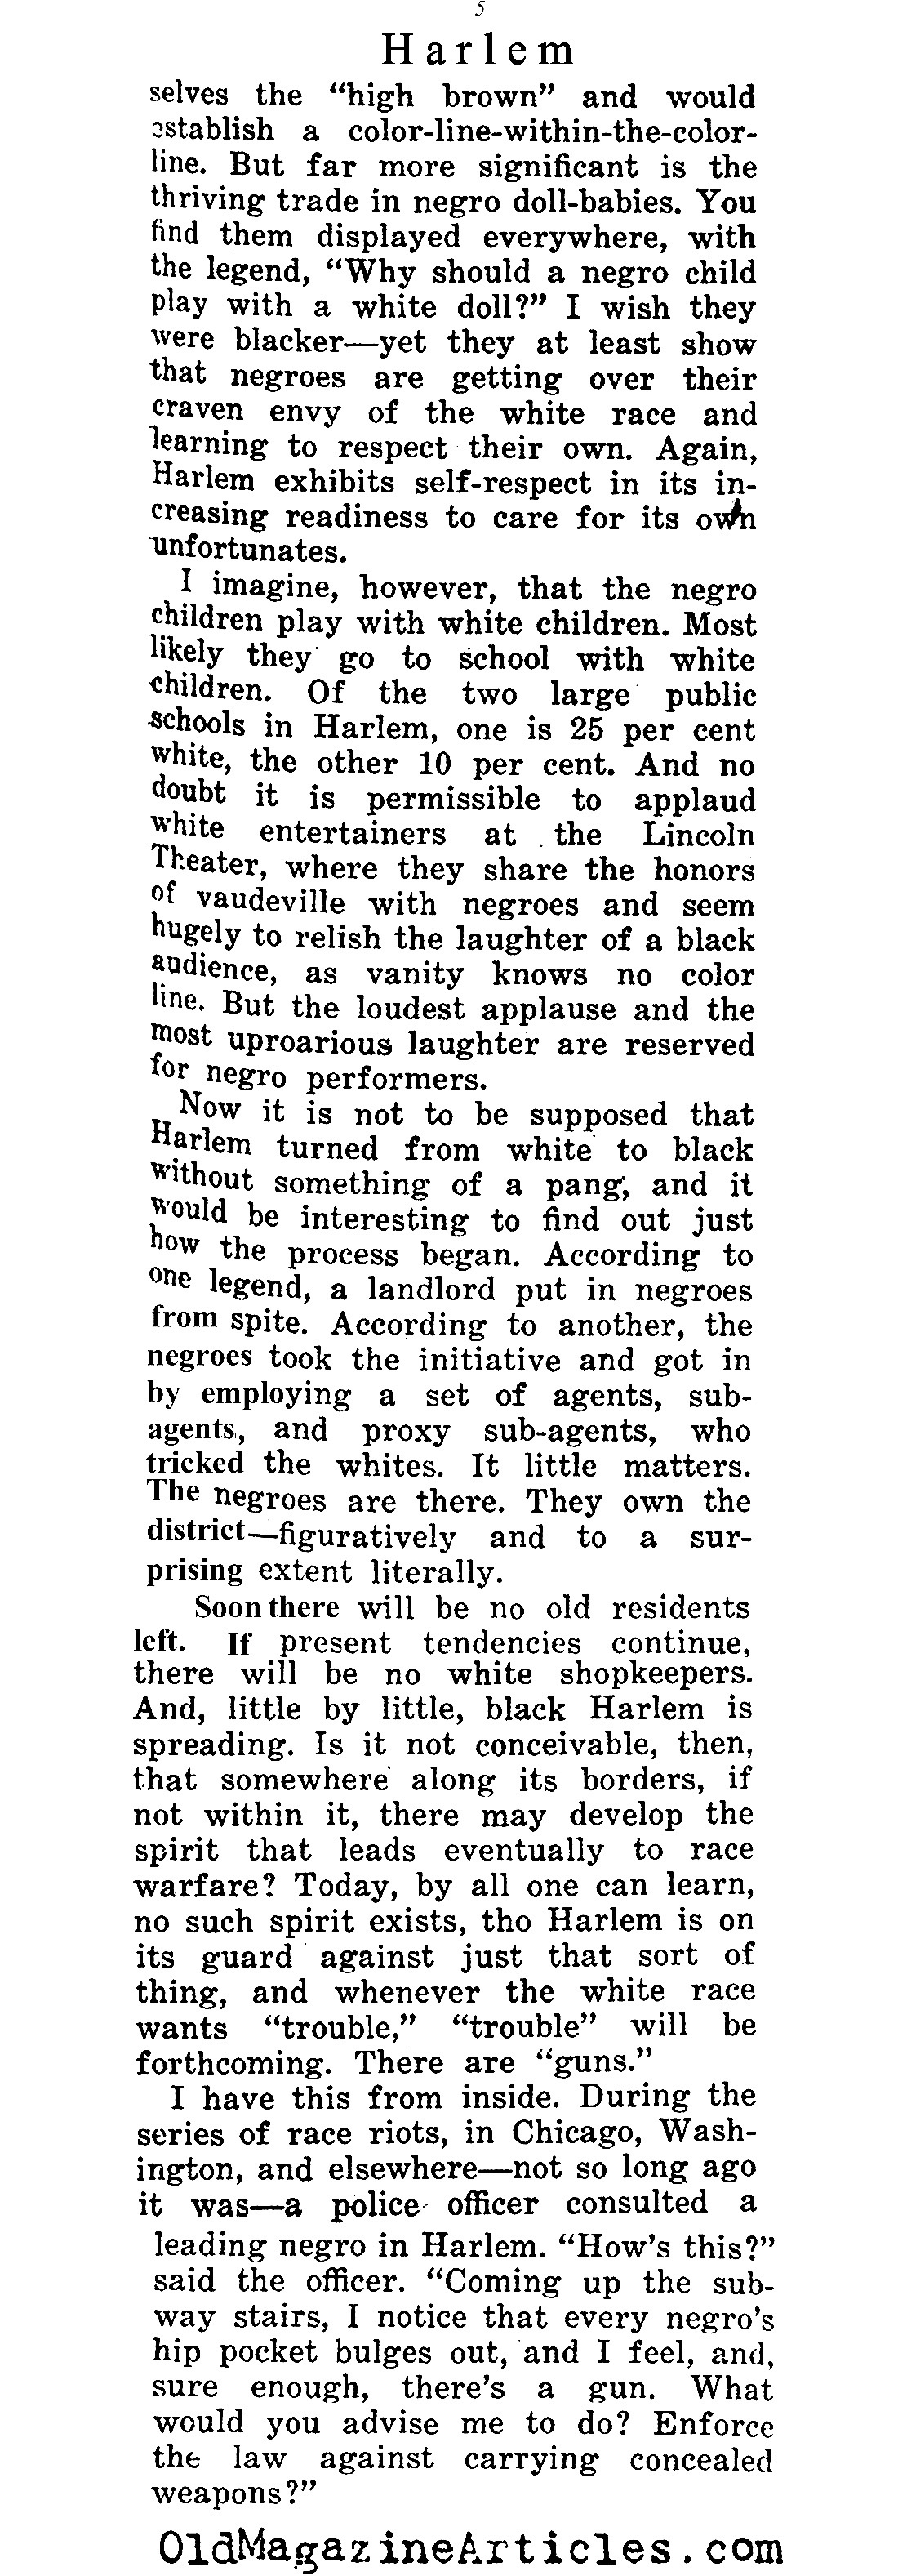 The Backdrop of the Harlem Renaissance   (The Independent, 1921)